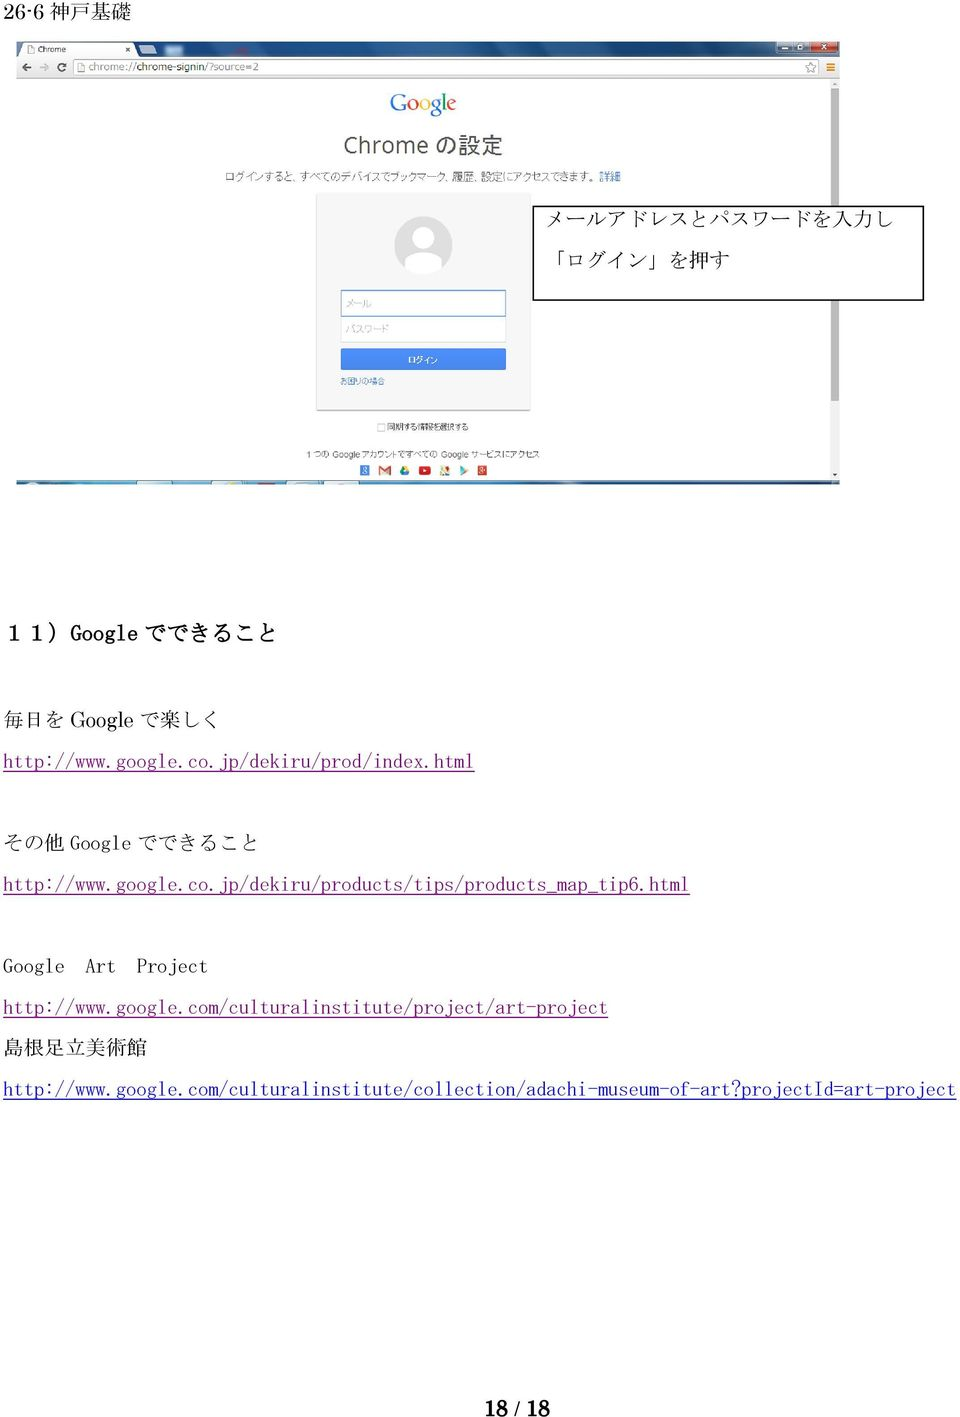 jp/dekiru/products/tips/products_map_tip6.html Google Art Project http://www.google.